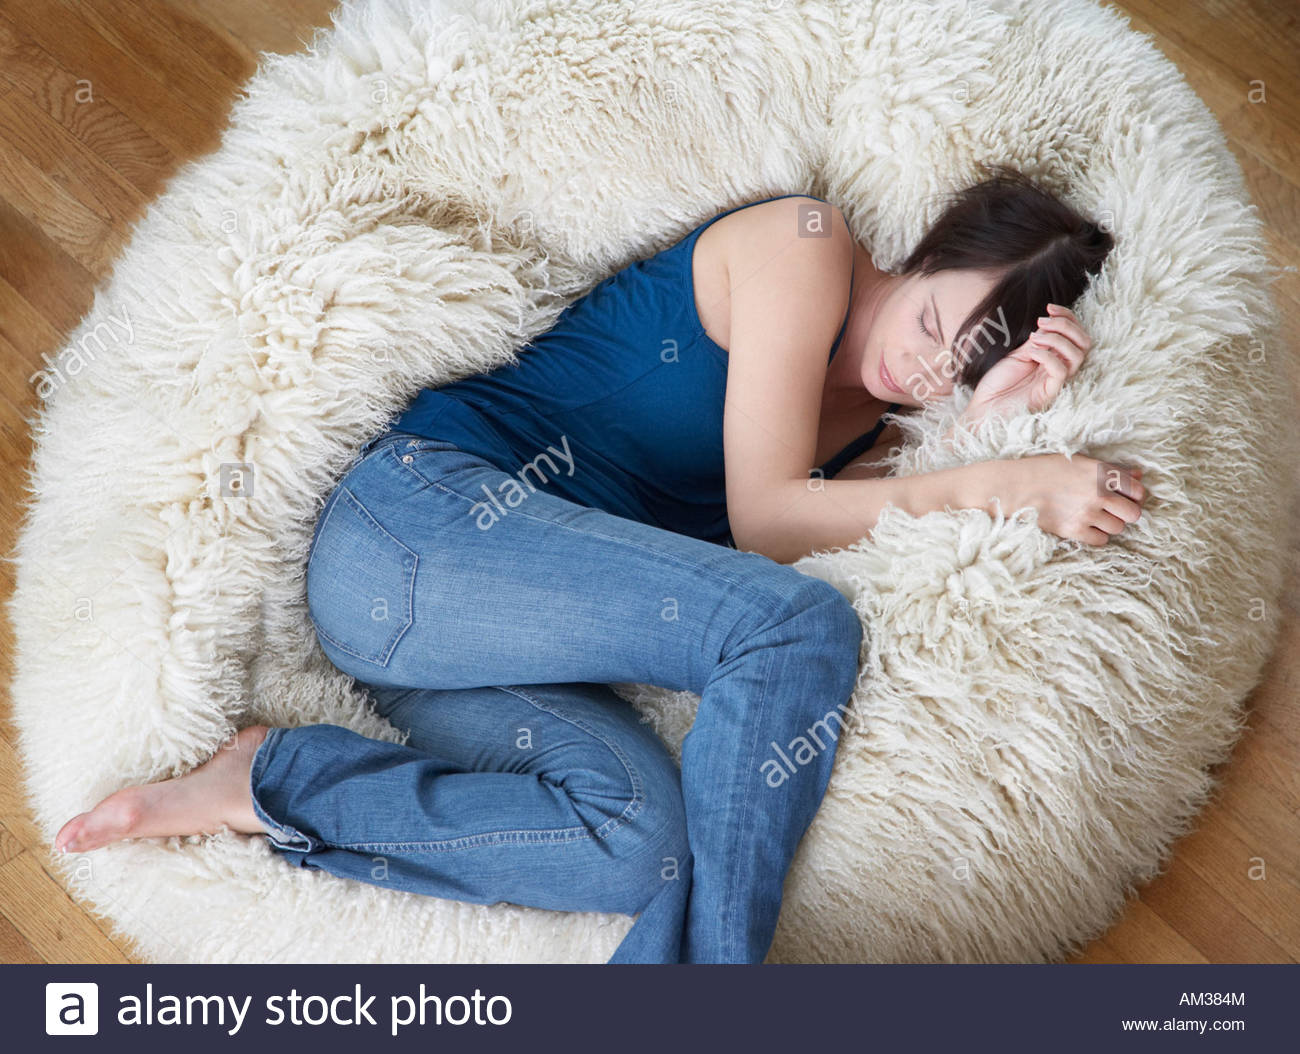 Woman On Furry Bean Bag Chair In Living Room Stock Photo